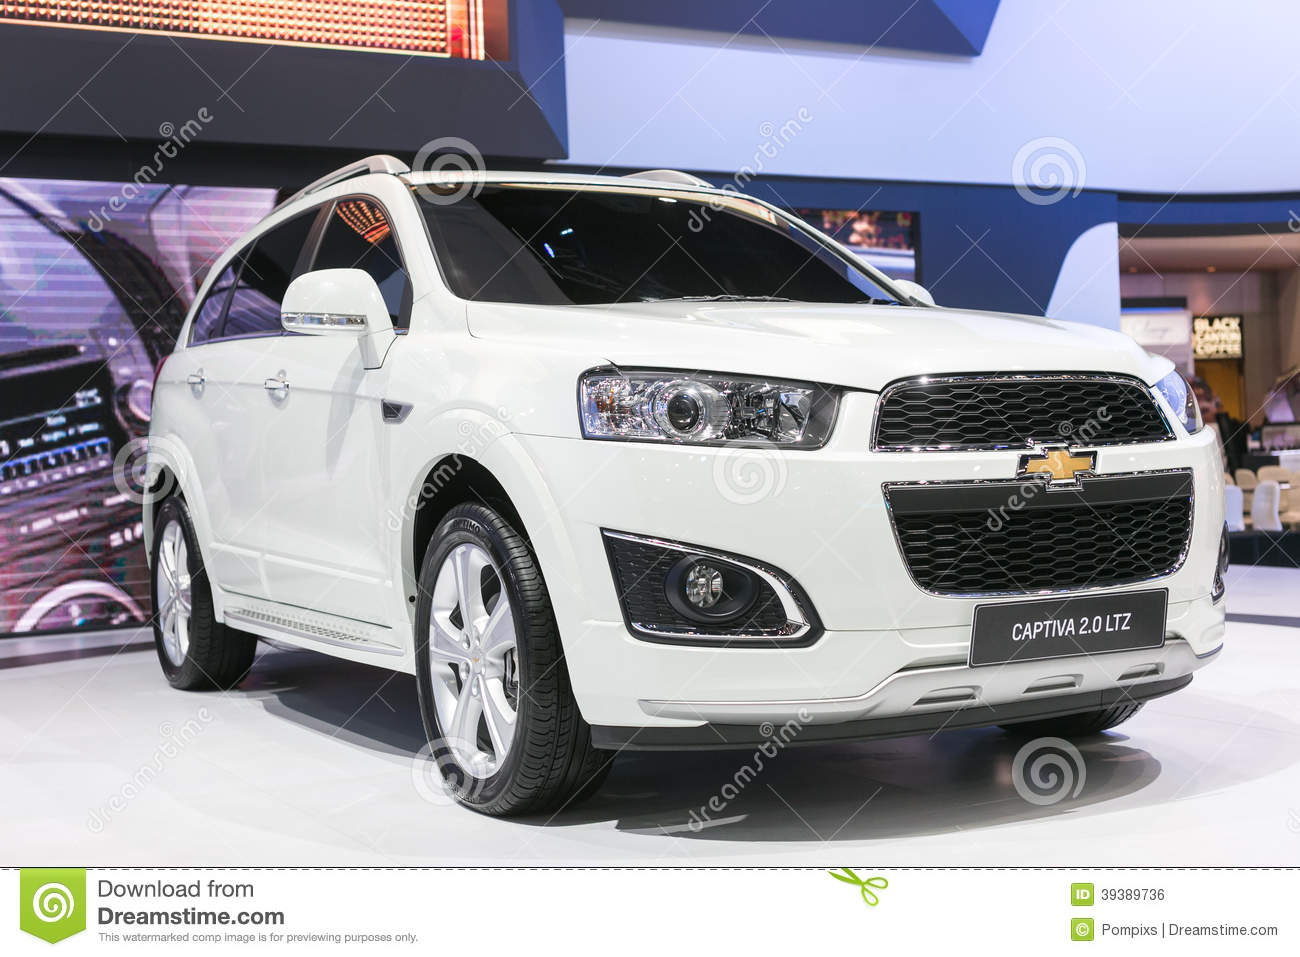 All New White Captiva Car From Chevrolet At The 35th Bangkok International Motor Show, Concept